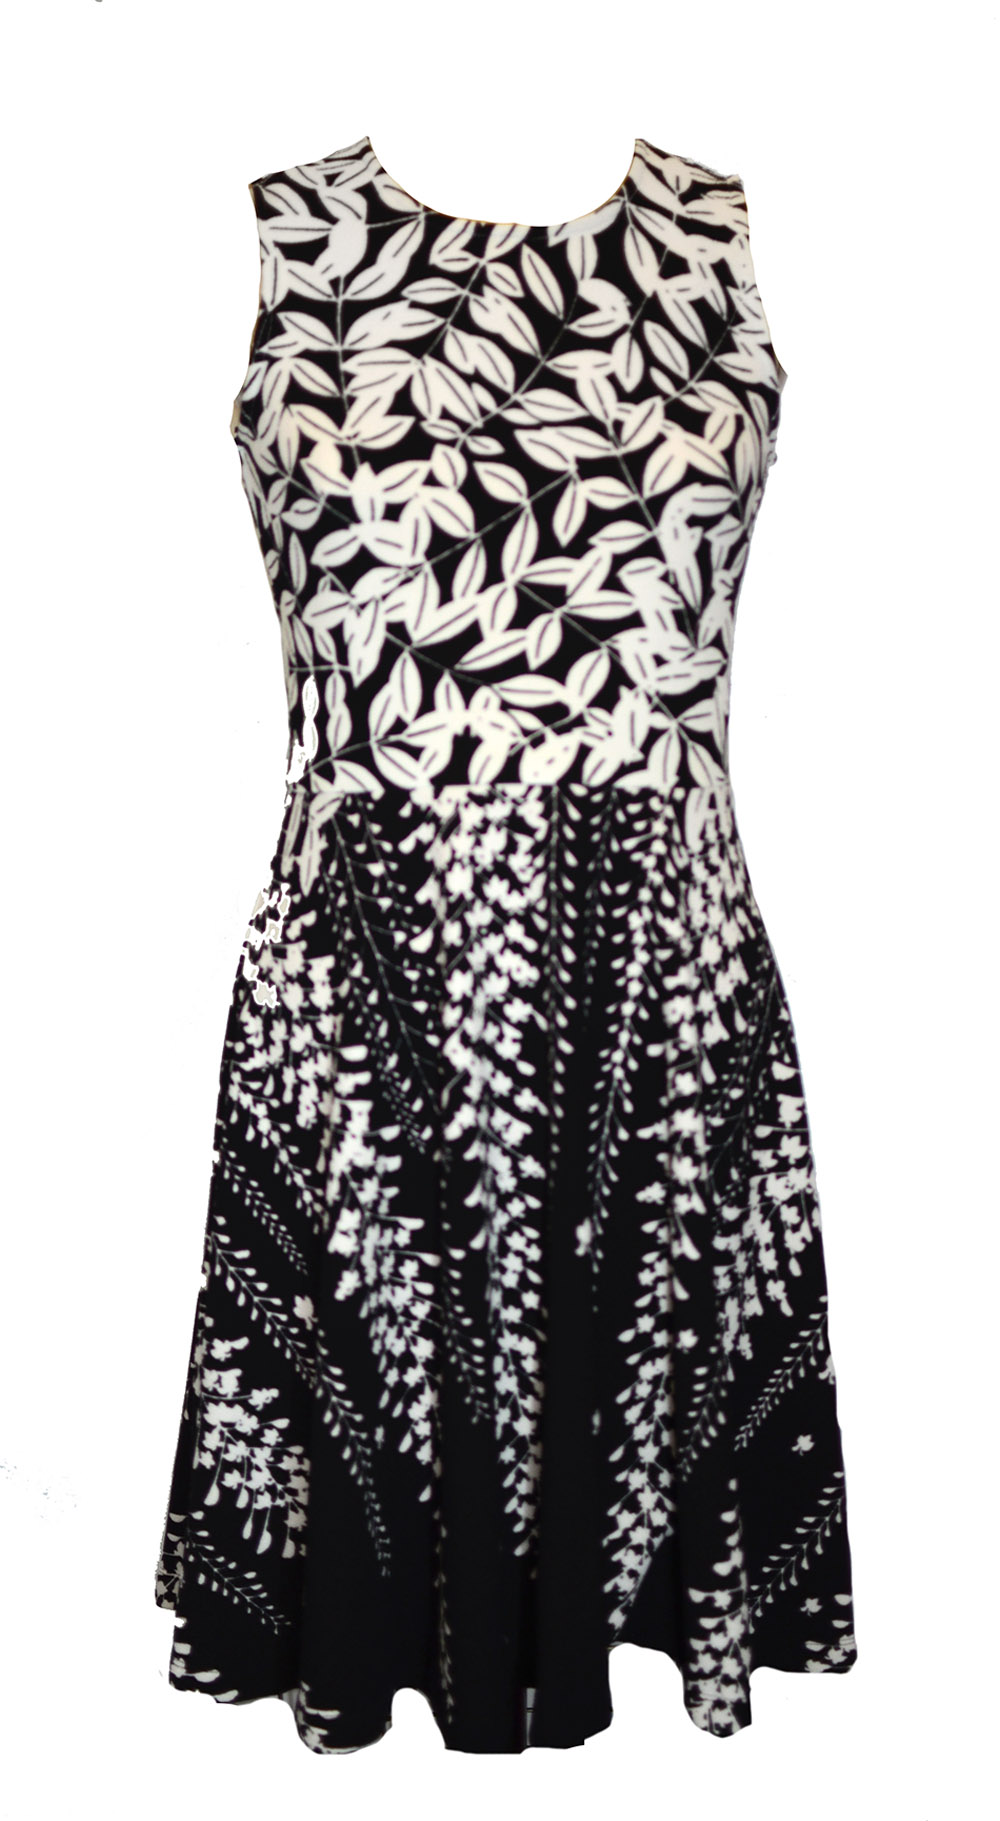 dress bw fit flare.jpg